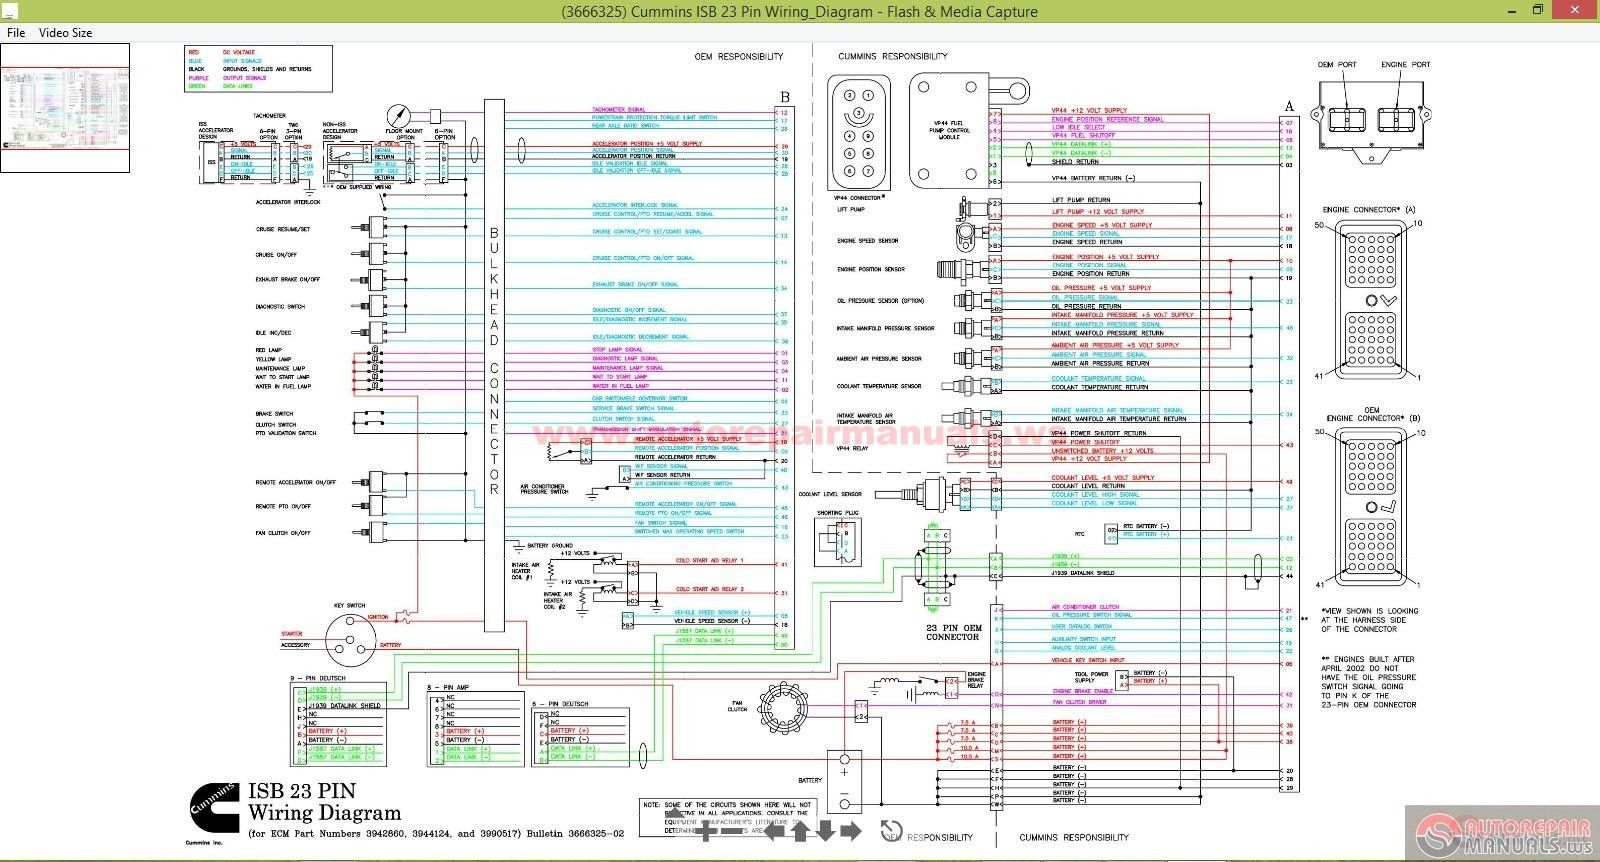 [ZSVE_7041]  Cummins N14 Celect Wiring Diagram in 2020 | Cummins, Diagram, Electrical wiring  diagram | Cummins N14 Wiring Schematic |  | Pinterest